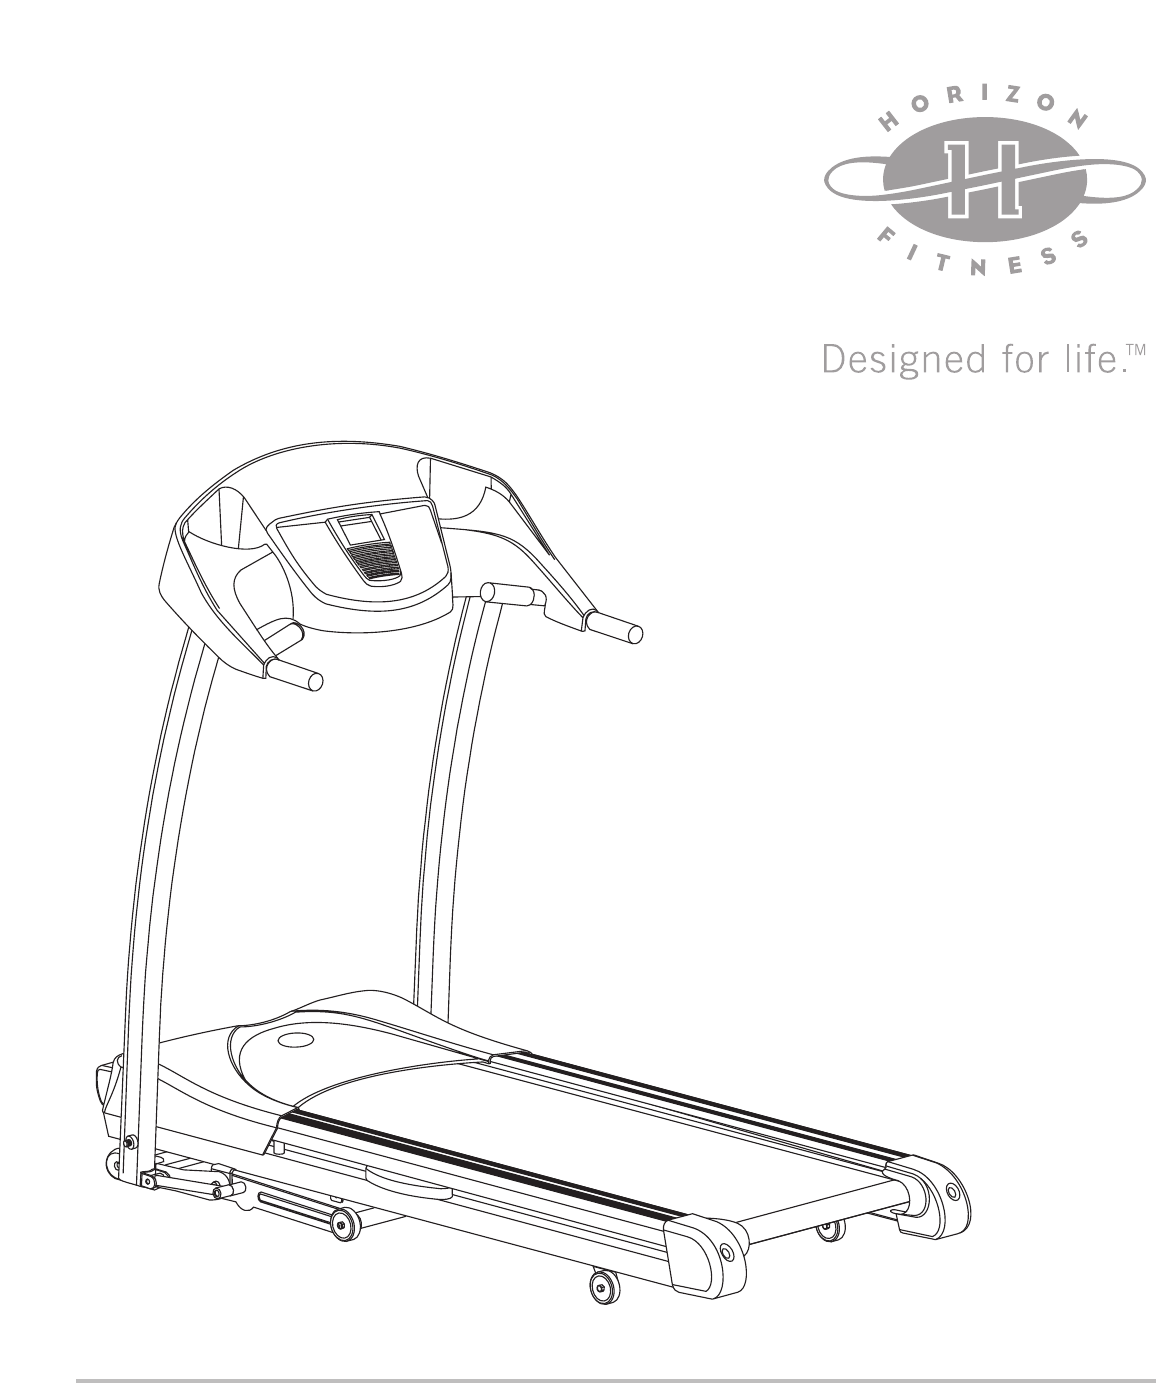 Horizon Fitness Treadmill Power Cord: Horizon Fitness Treadmill T805 User Guide